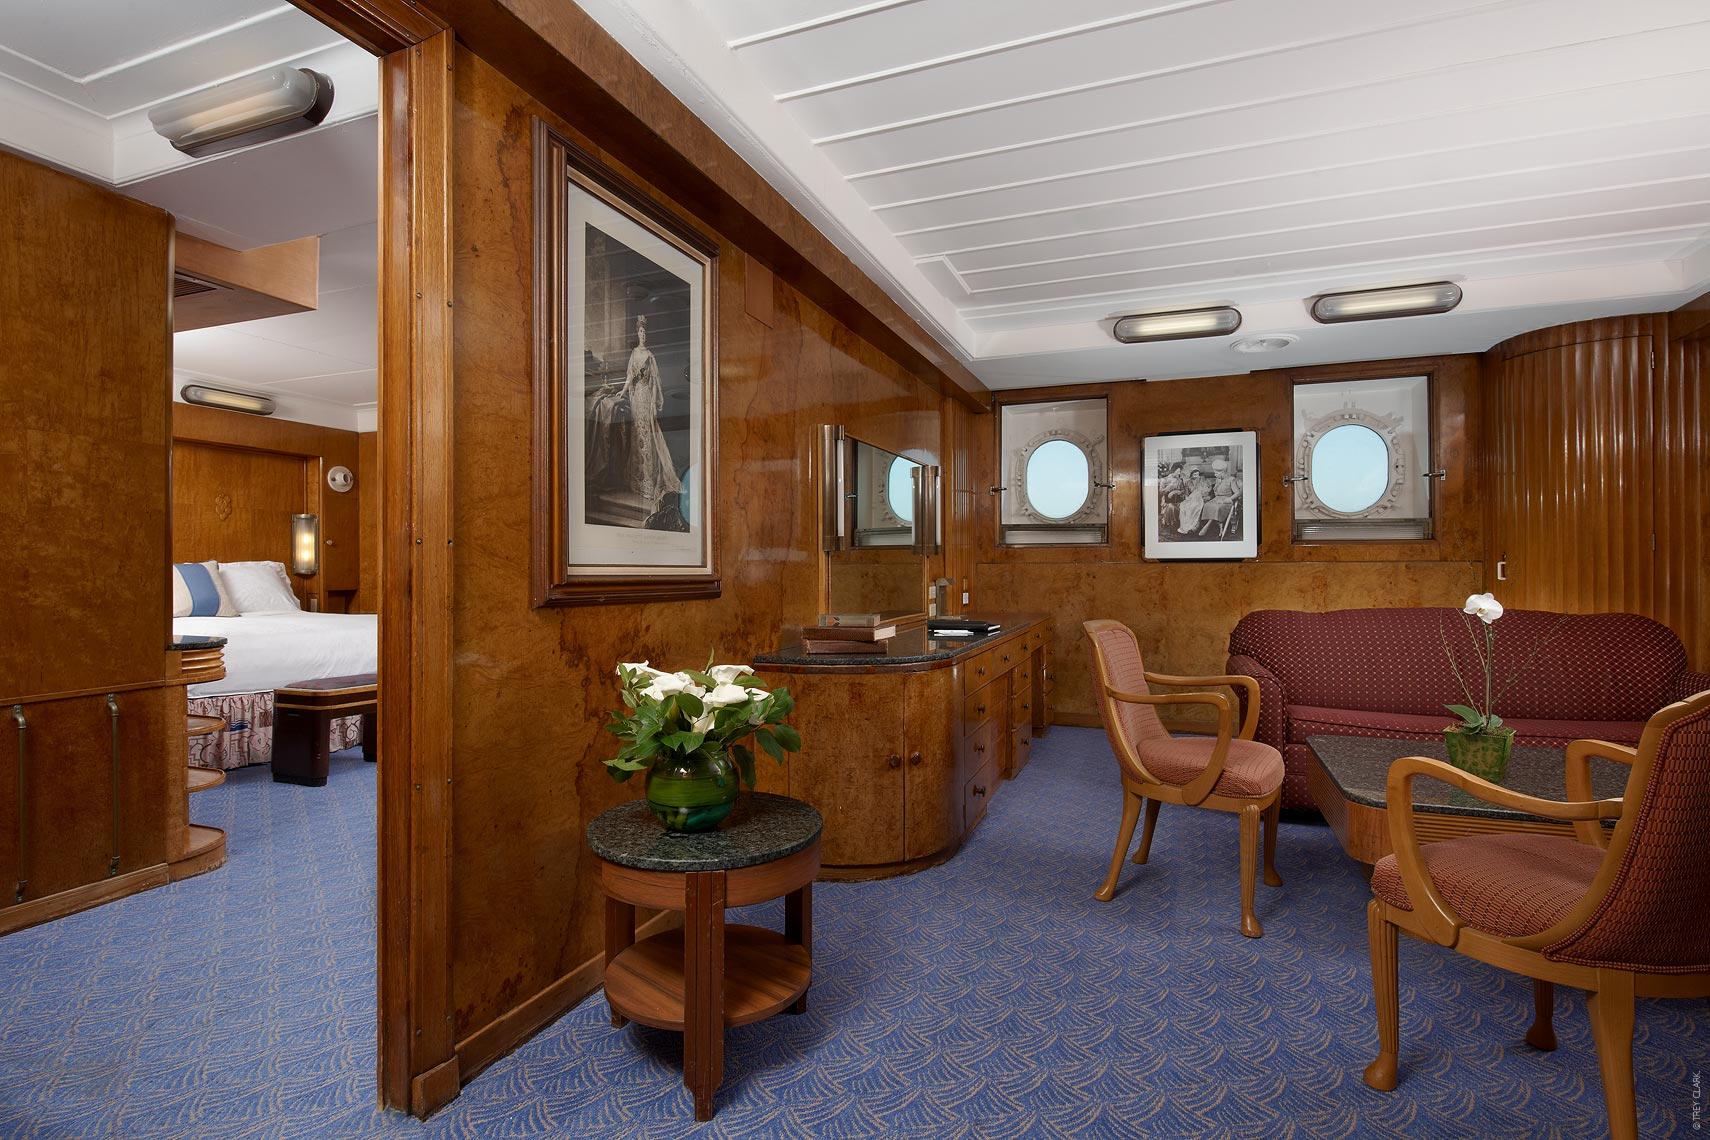 QM_QueenMary_Suite_460_TreyClark.jpg